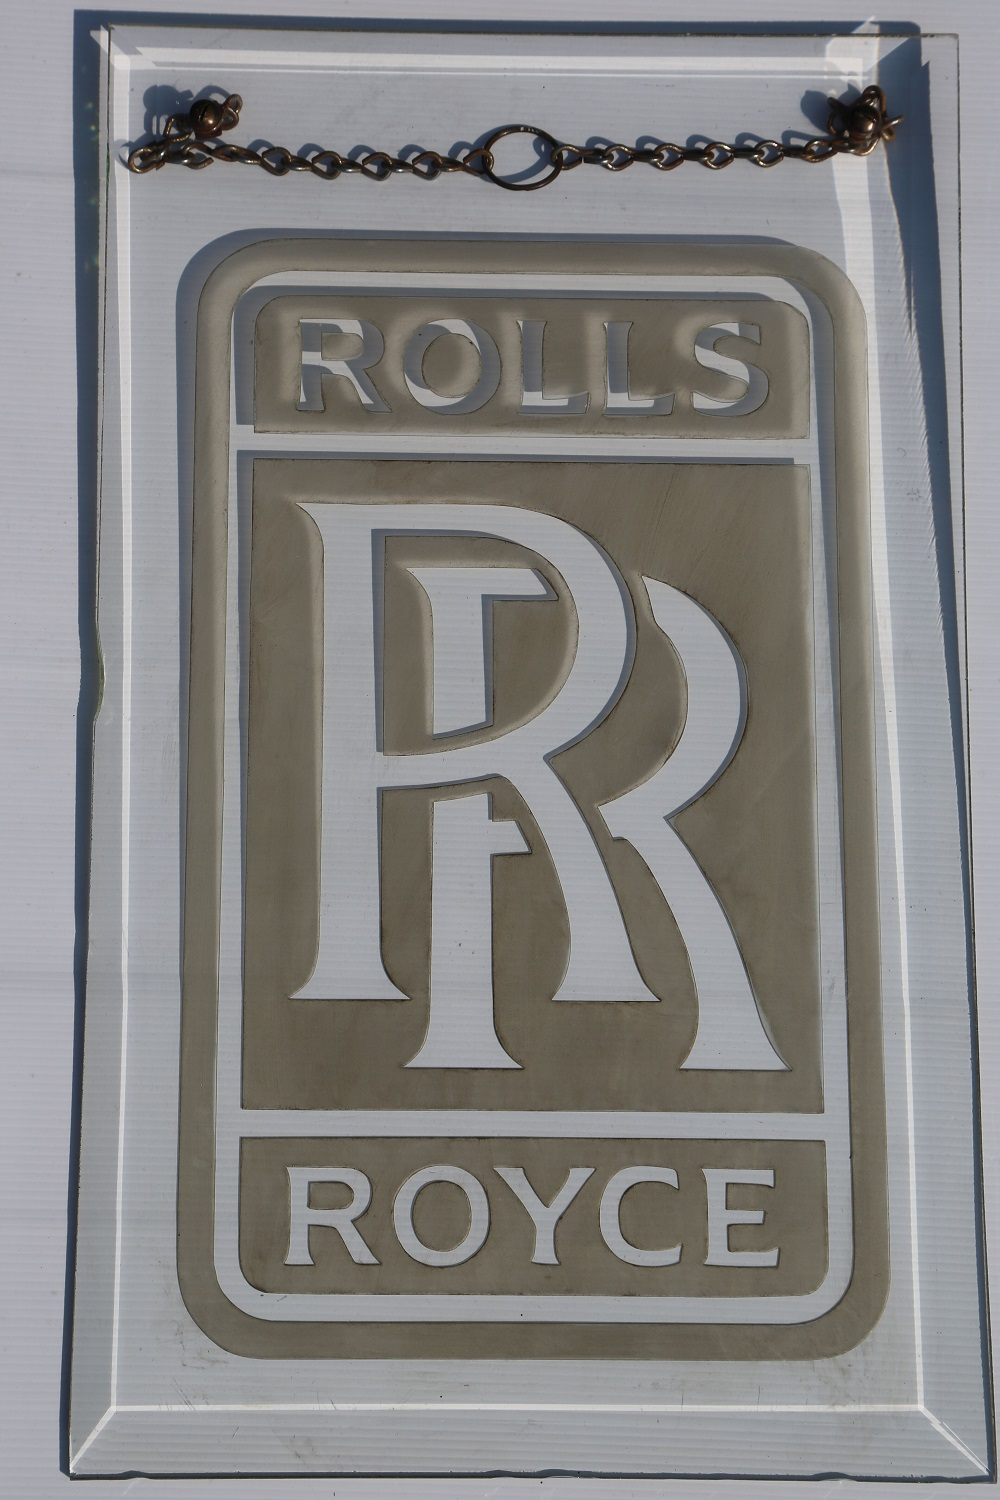 Lot 27 - Rolls Royce: Etched Glass Showroom sign - 20 x 12 inches